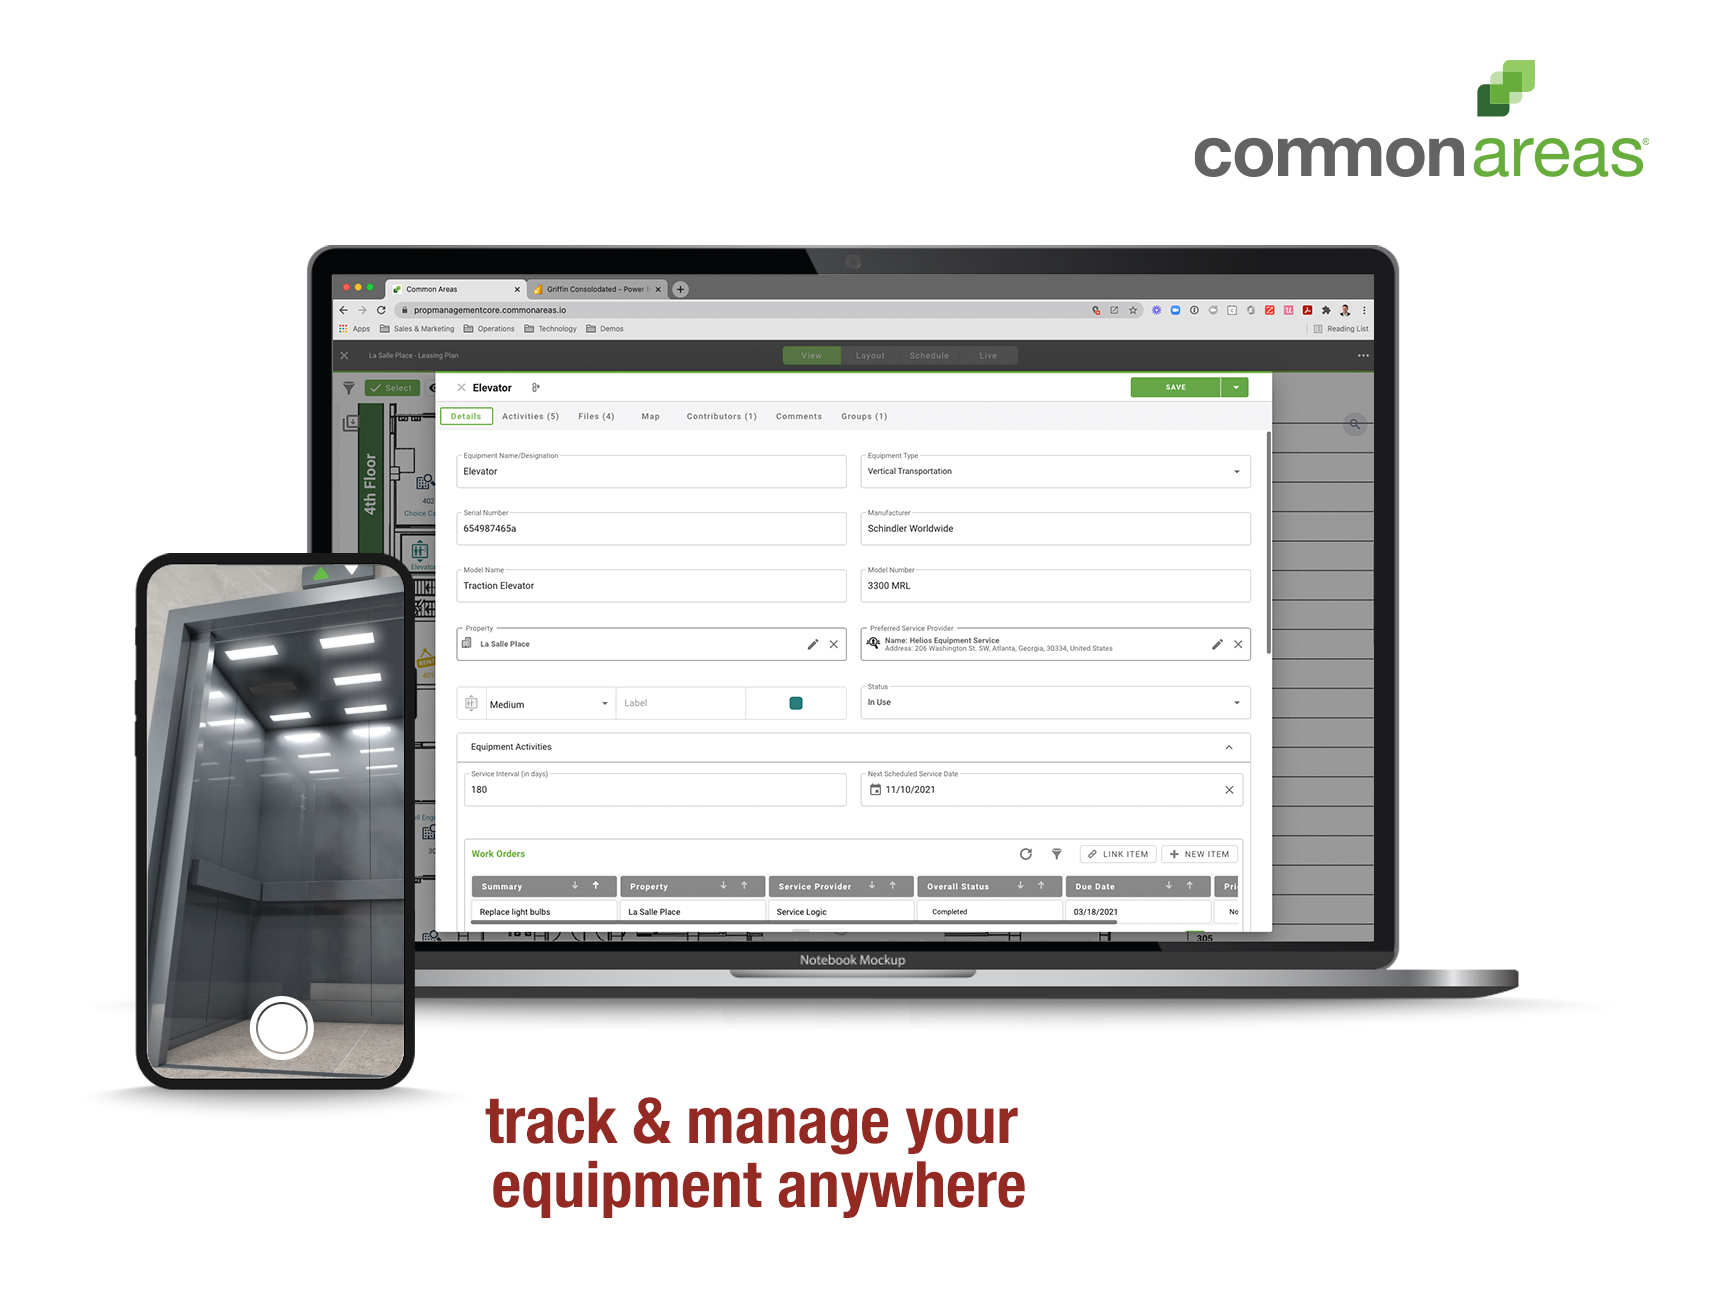 Access all of your equipment information in one place, right at your fingertips. Streamline your maintenance processes and keep track of everything related to your properties including work orders, inspections, equipment and more.